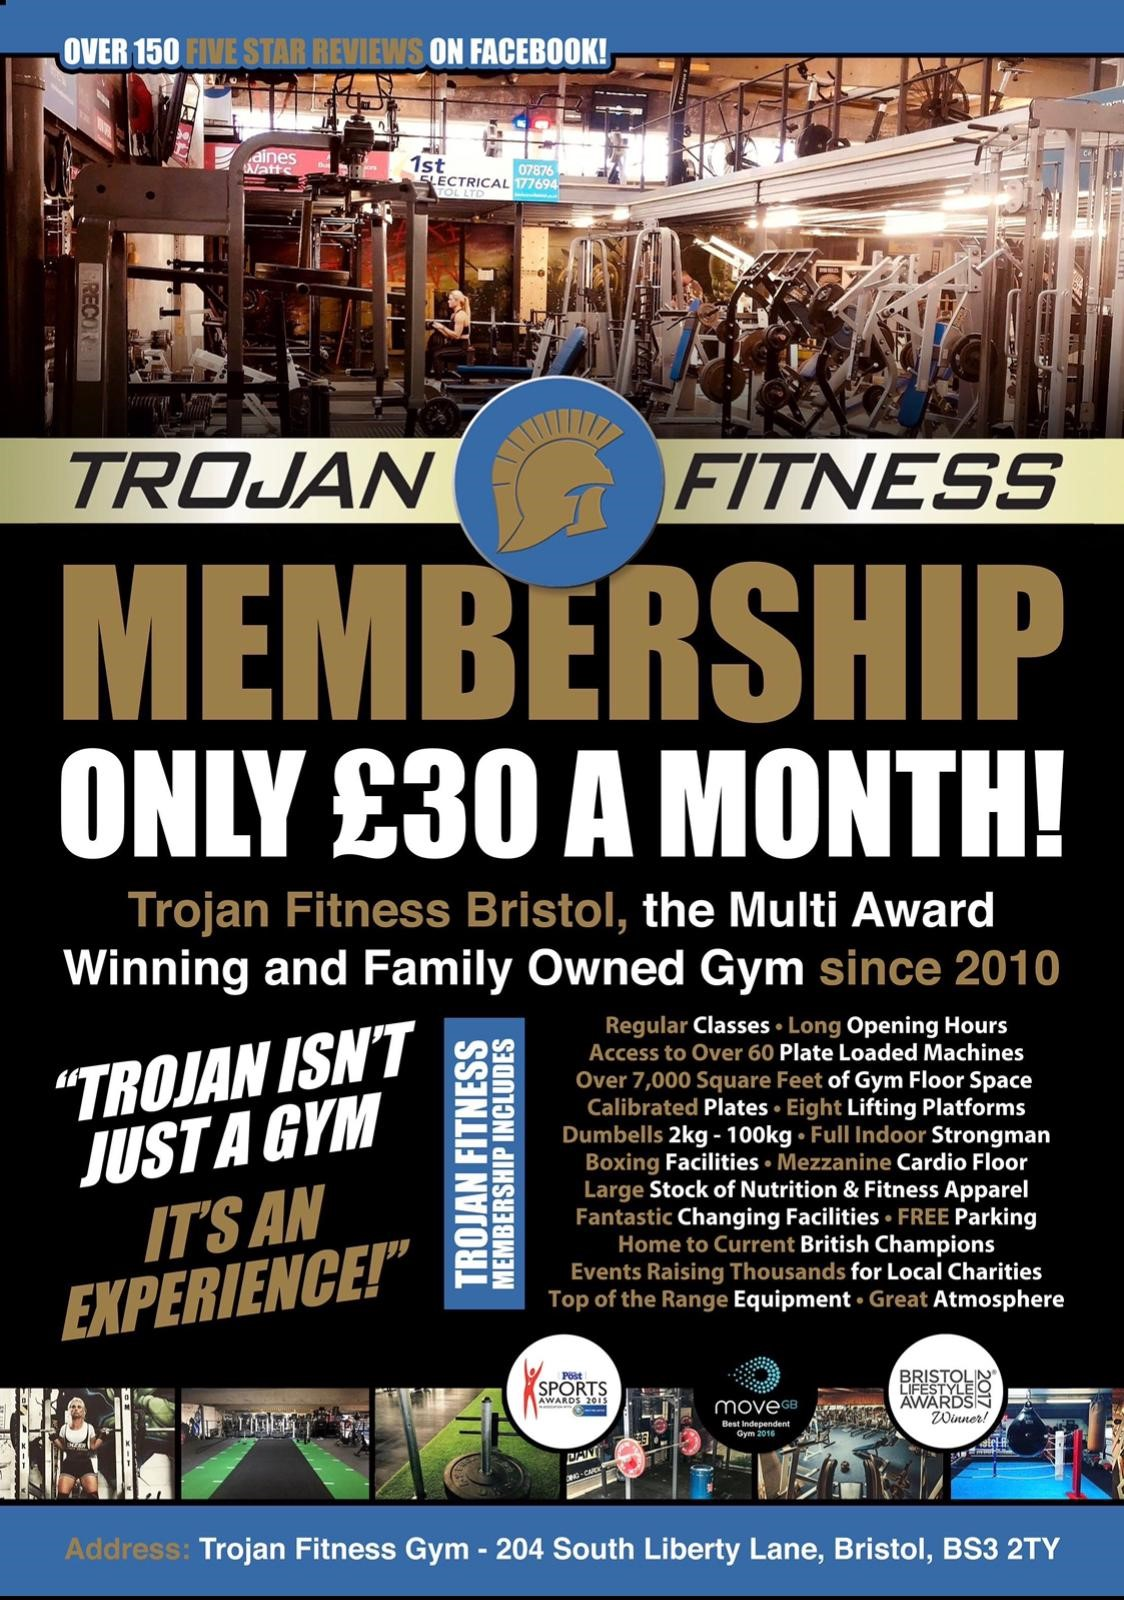 Trojan Fitness Membership only £30 a month